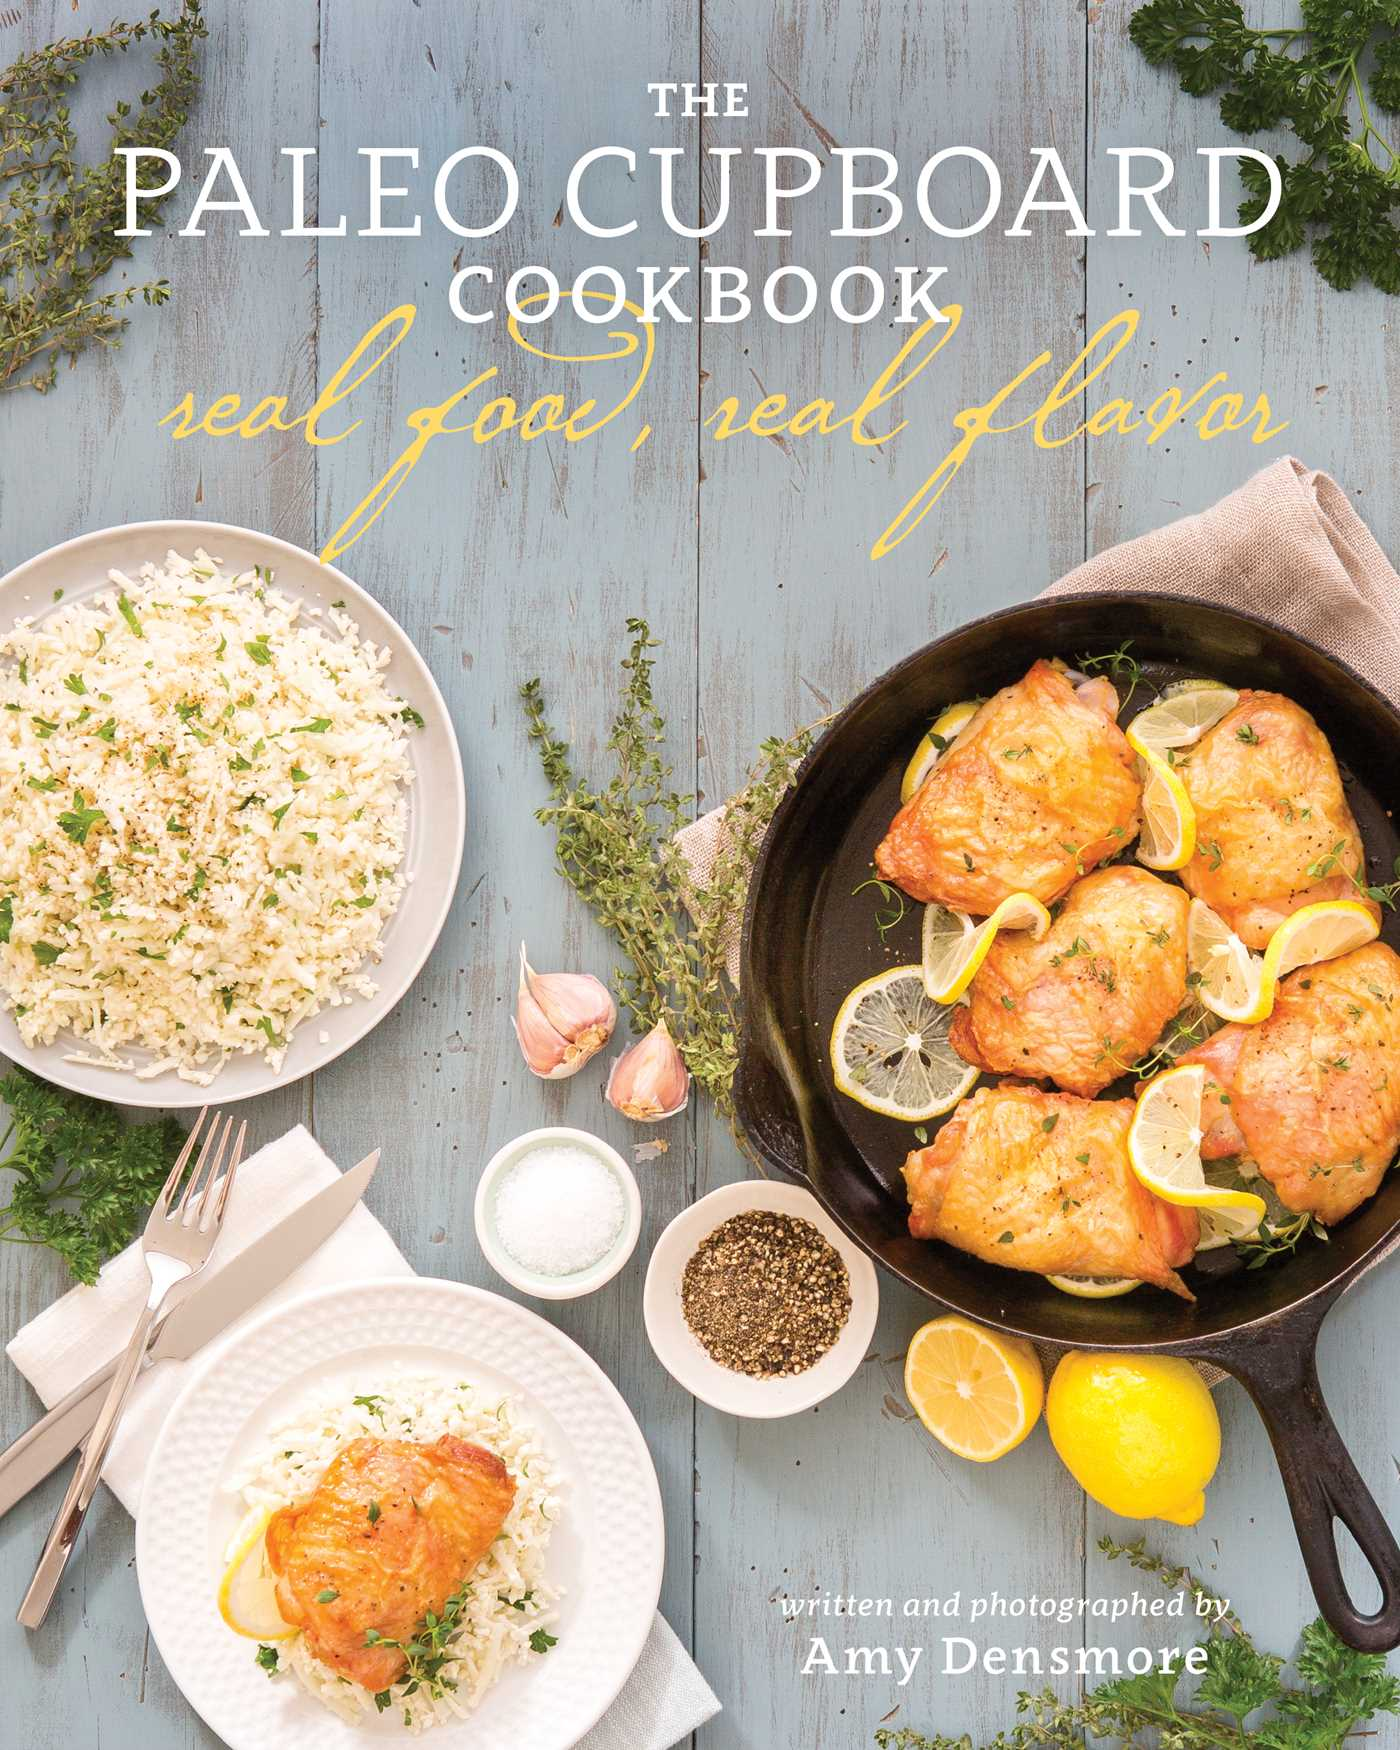 The paleo cupboard cookbook book by amy densmore official book cover image jpg the paleo cupboard cookbook forumfinder Image collections